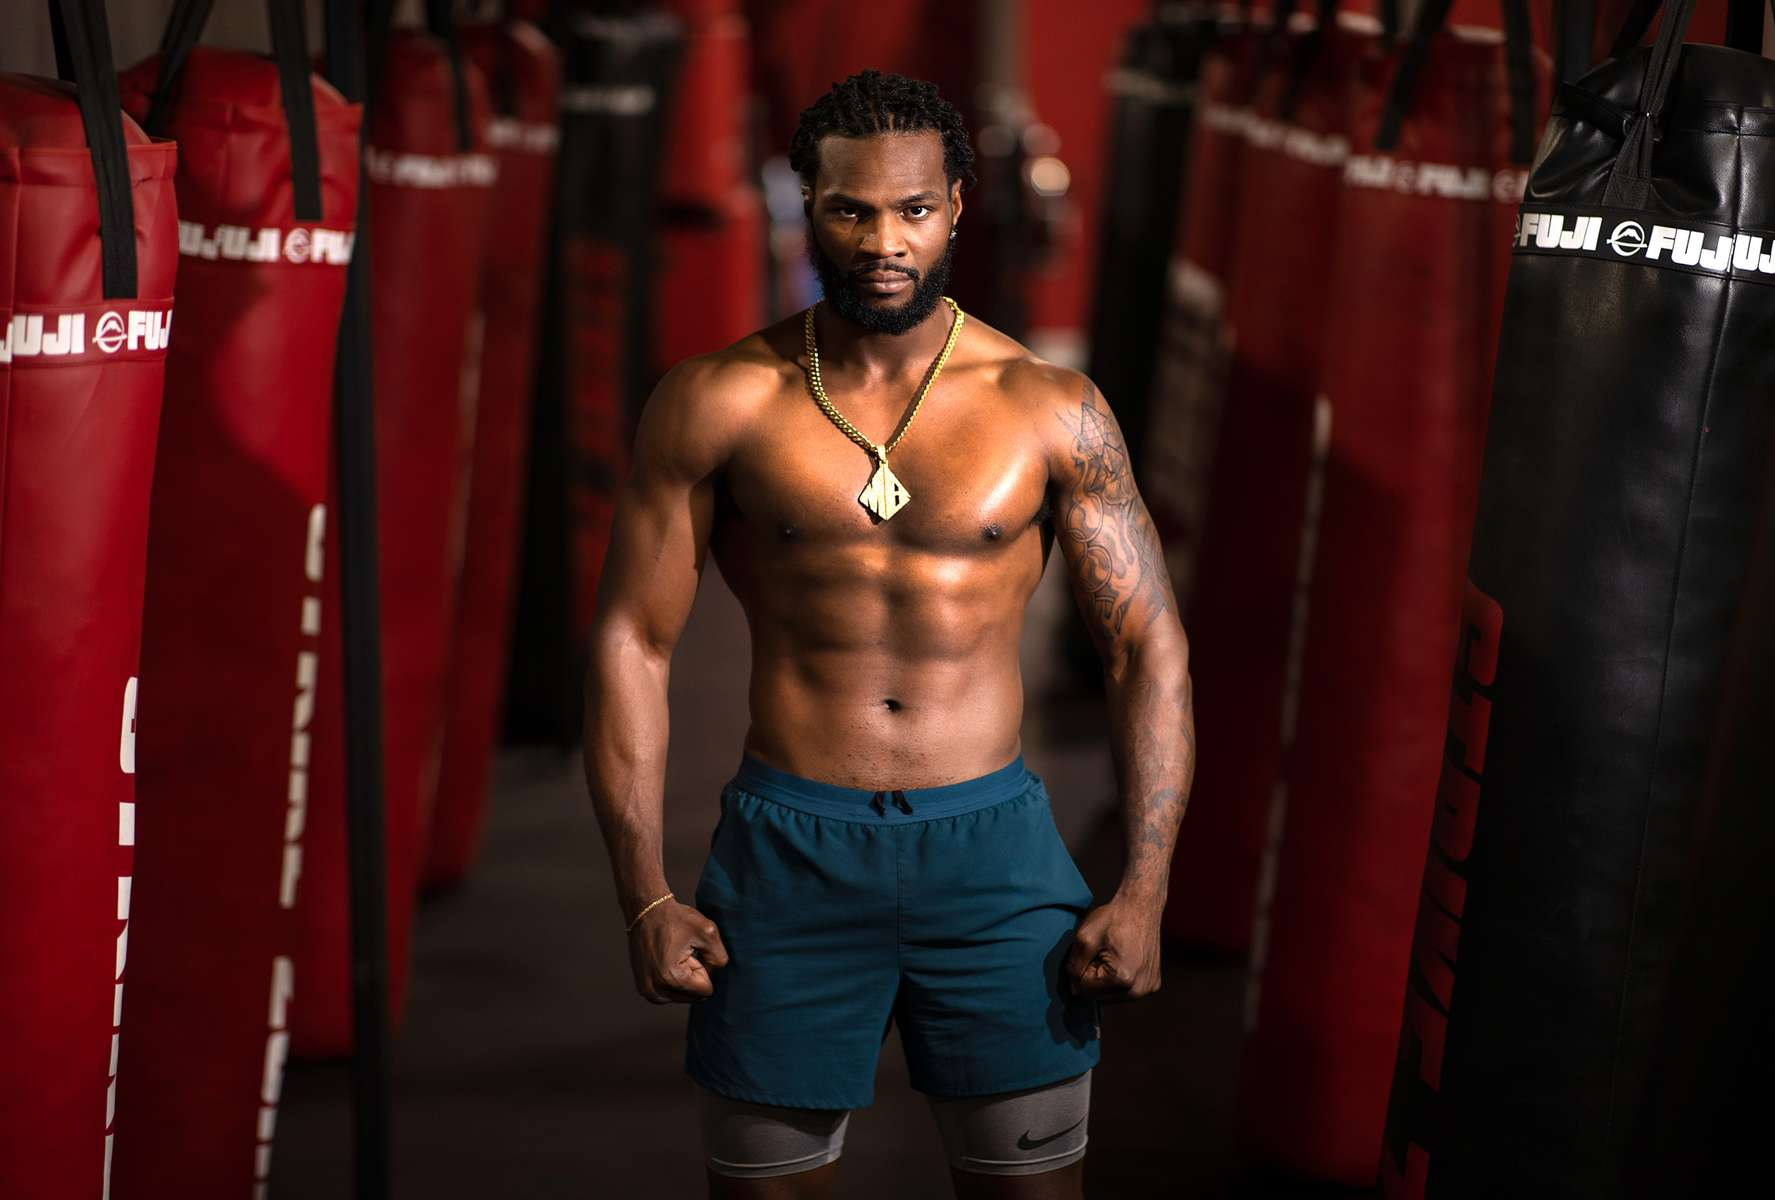 Former WBA Light Heavyweight Champion boxer Marcus Browne poses for a portrait at the Impact Zone fitness and sports performance training facility on July 17, 2020 in Norwood, New Jersey.   In addition to his normal boxing workouts, Browne has been experimenting with alternative training methods to improve his fitness during the coronavirus pandemic as he seeks to regain the Light Heavyweight Championship. More than 3,680,000 people in the United States have been infected with the coronavirus and at least 141,000 have died.